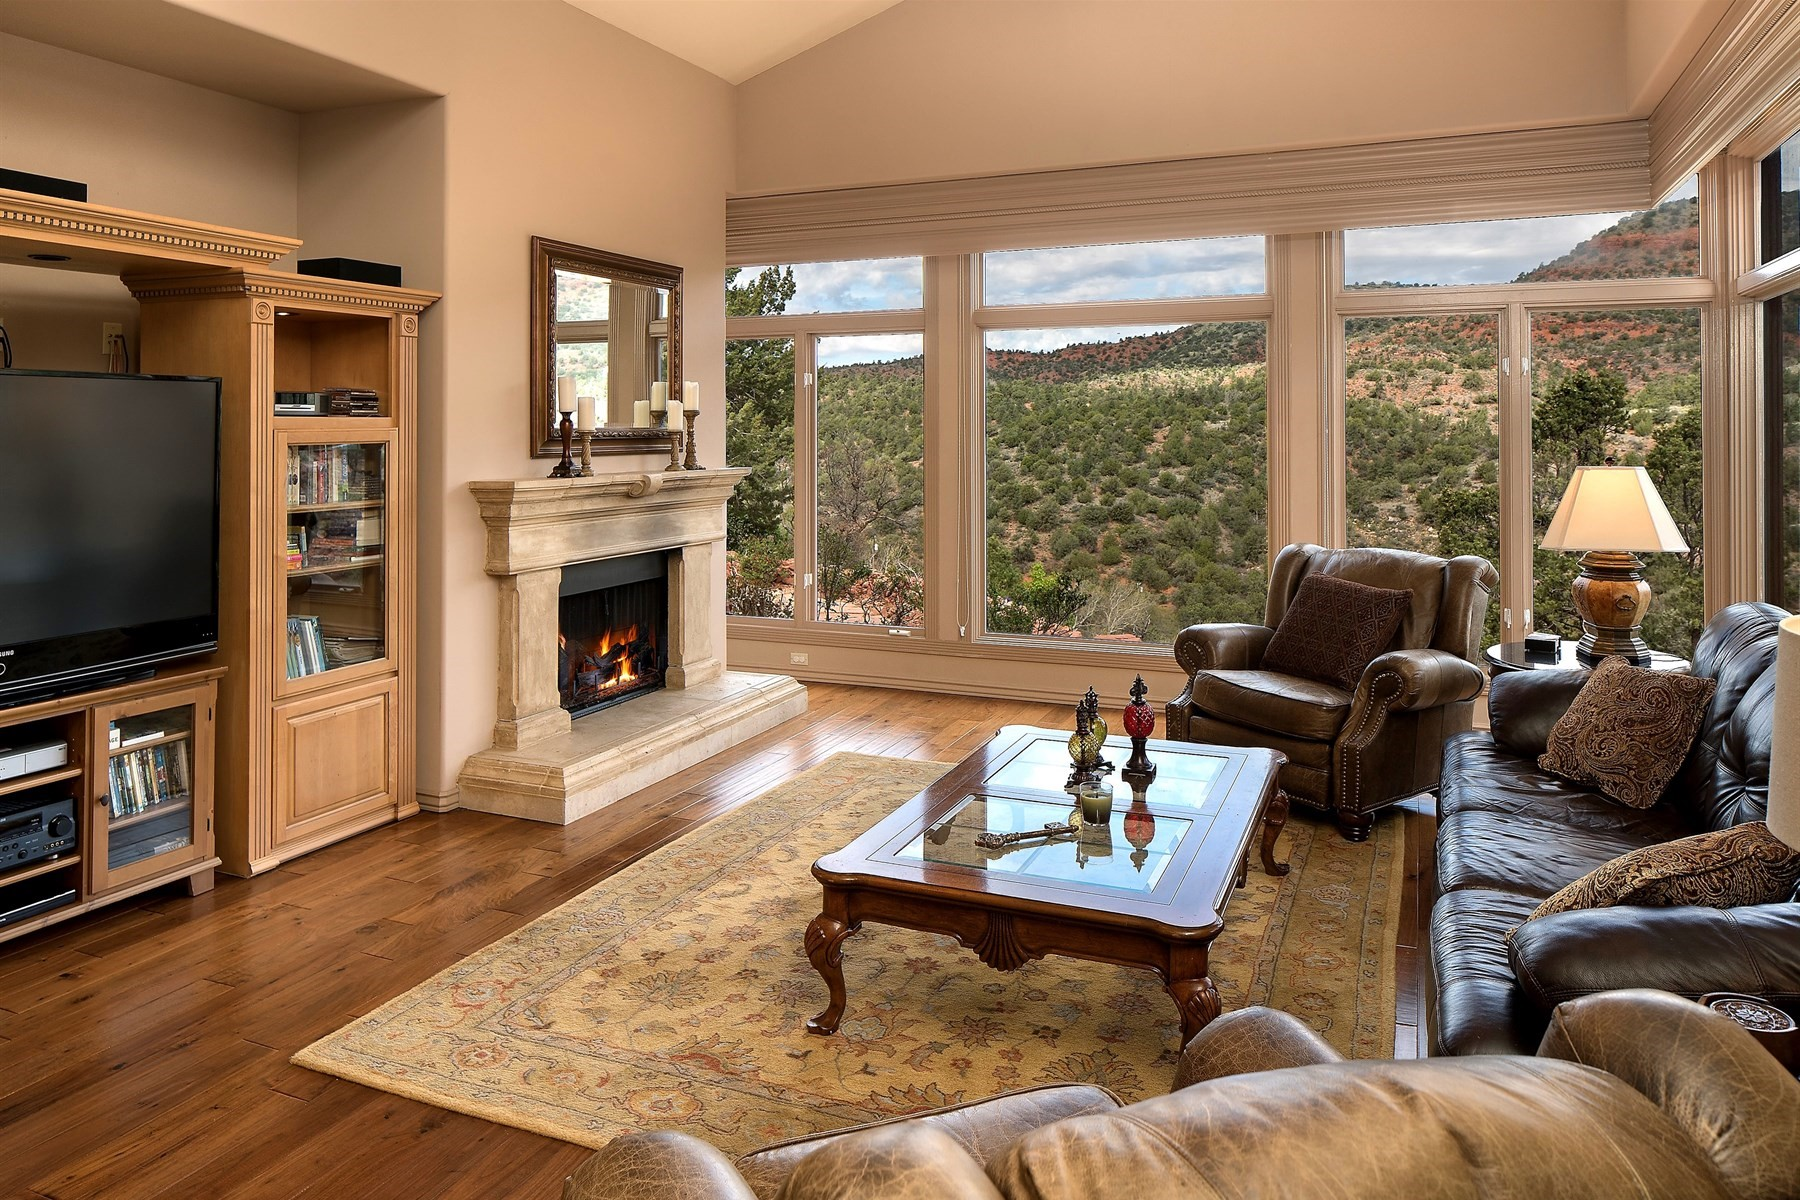 Частный односемейный дом для того Продажа на Beautiful custom home perched on a hilltop high above Oak Creek 680 Elysian Drive Sedona, Аризона, 86336 Соединенные Штаты